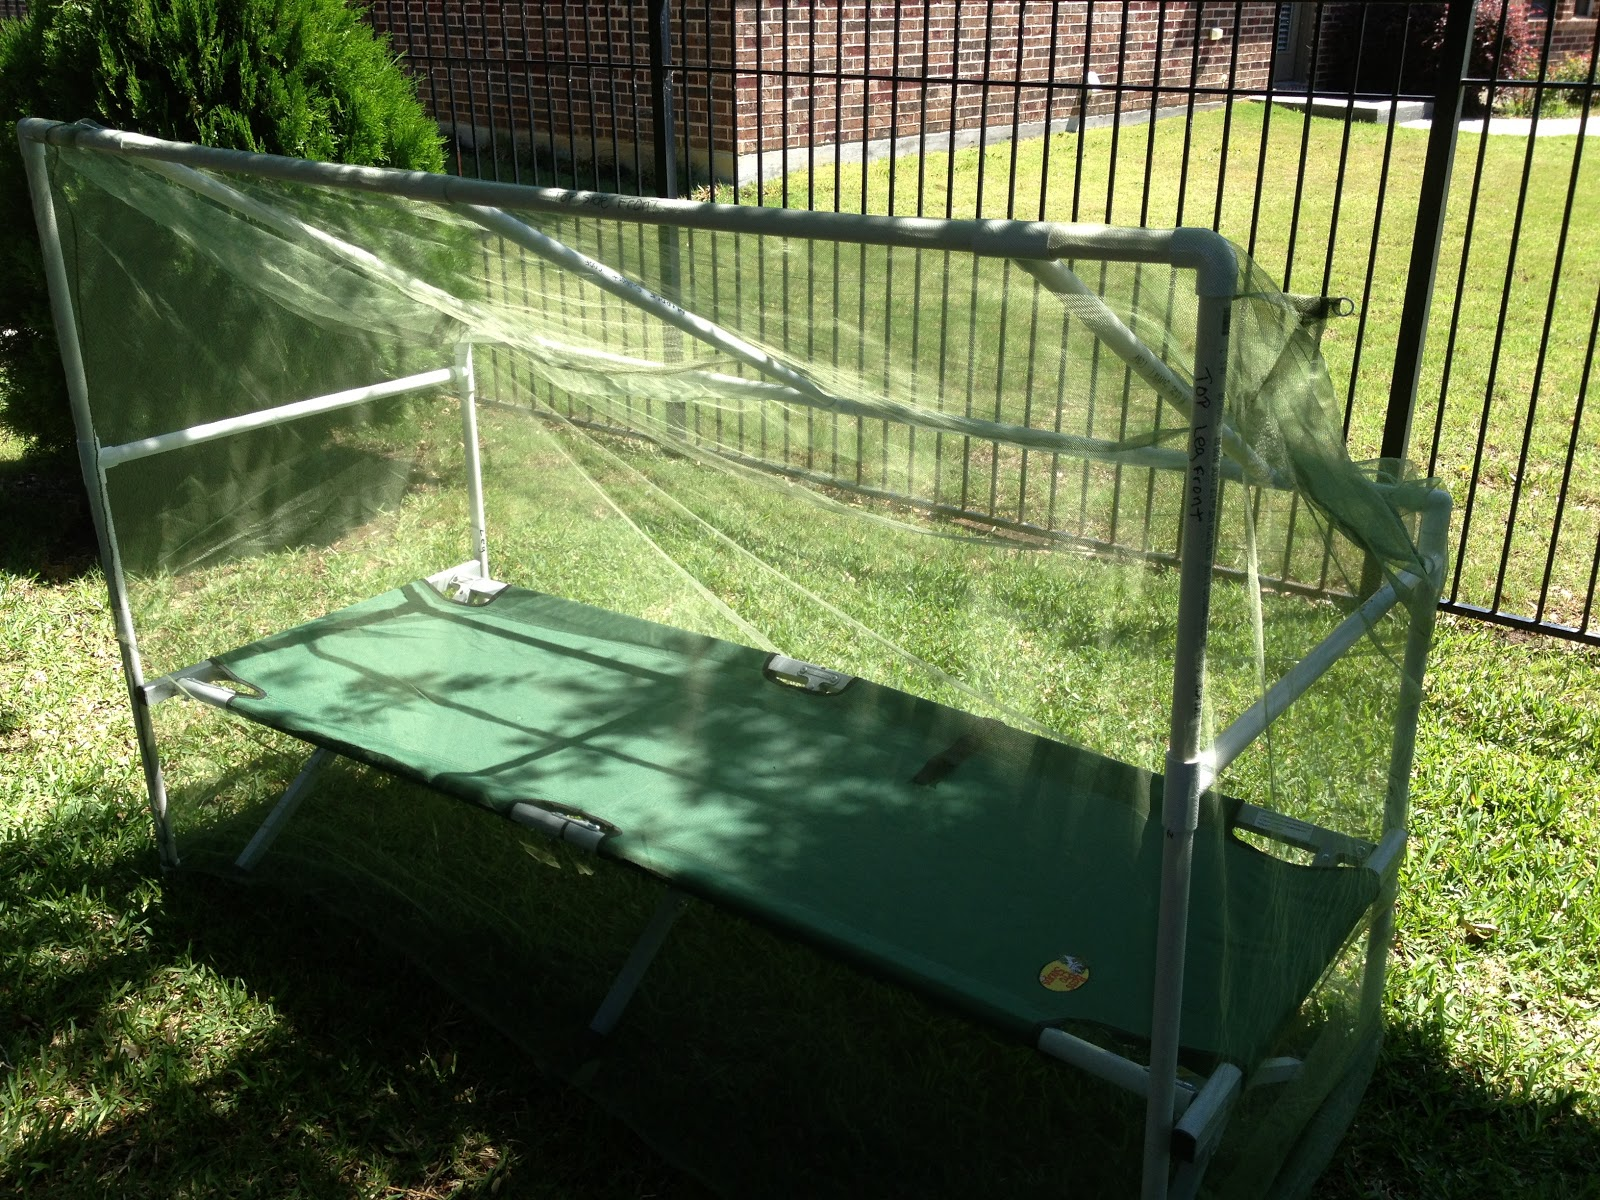 GR8Scouting: Mosquito Net PVC Frame